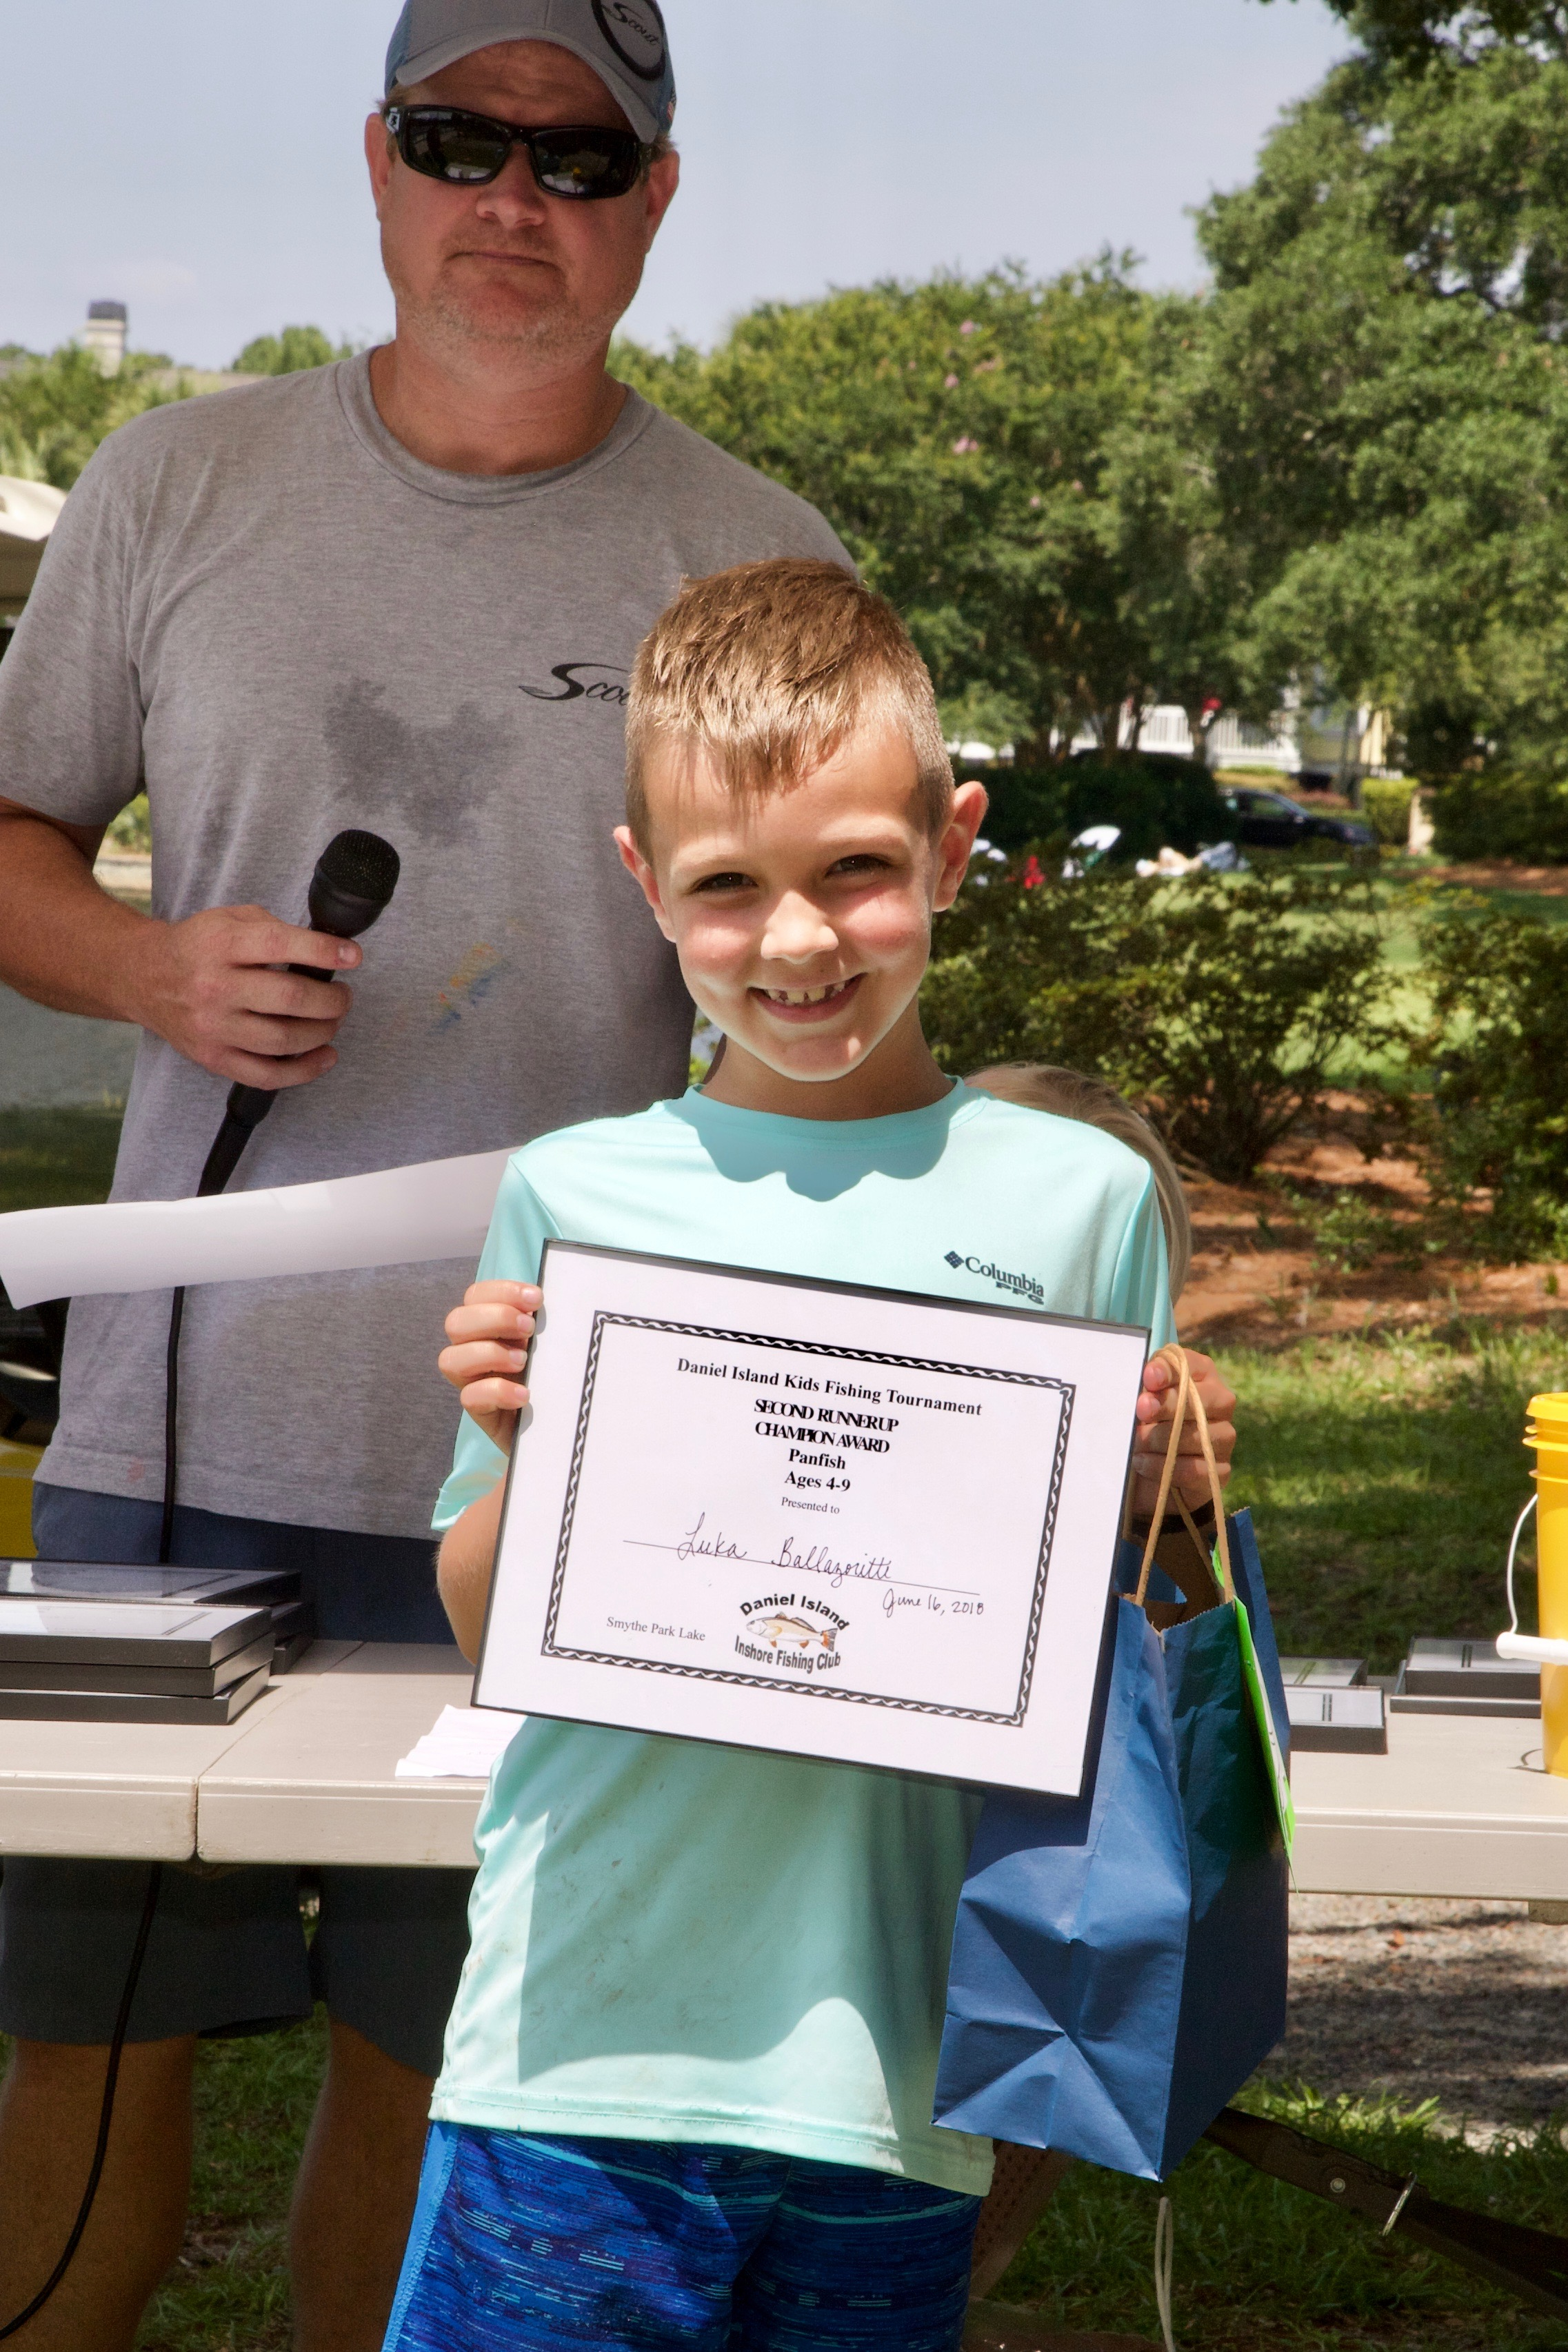 Lucca Balazorotti – Champion Award, 2nd Runner Up,  Panfish, Ages 4-9.